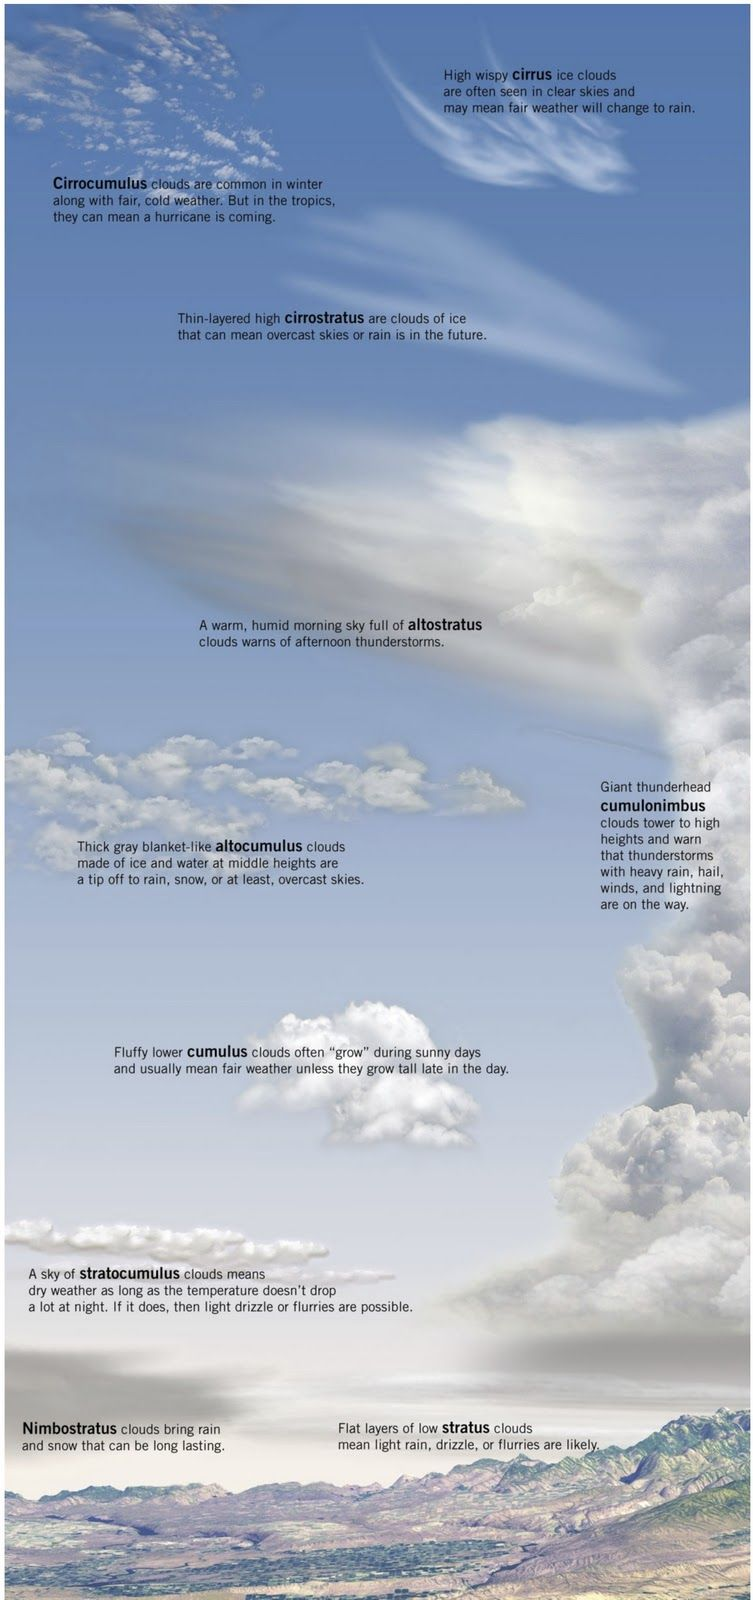 small resolution of What do different clouds mean for the weather?   Kinds of clouds